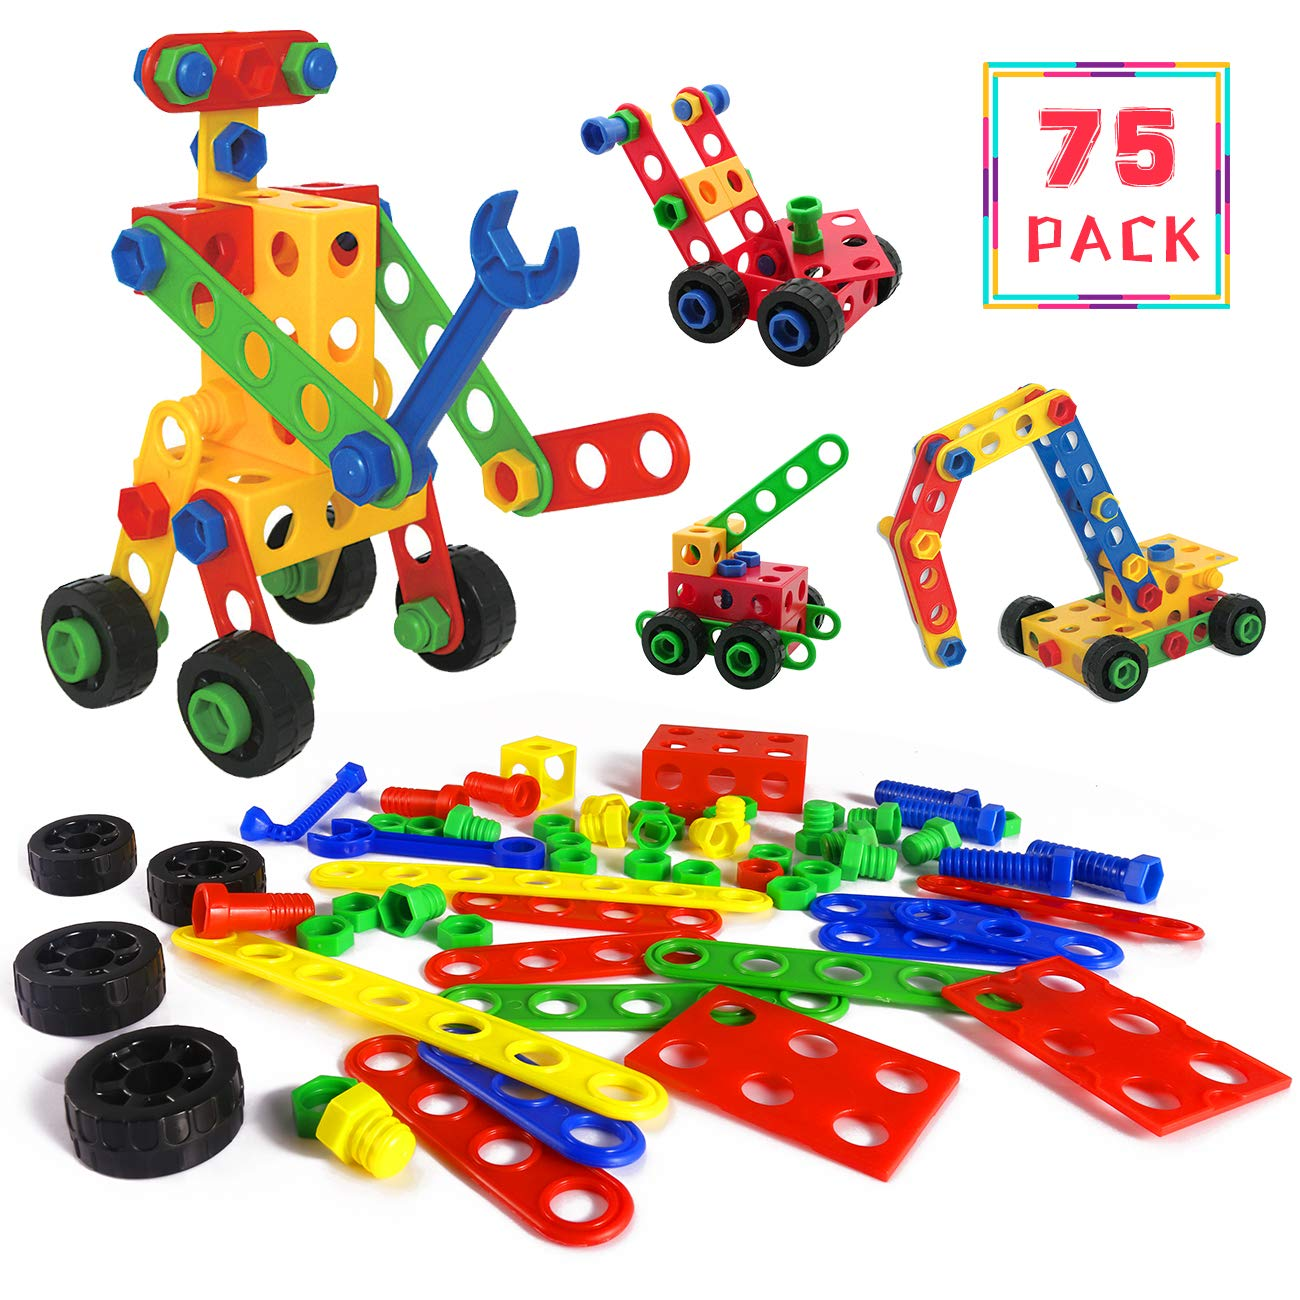 HALOFUN 75PCS STEM Toys Kit, Educational Construction Engineering Building Blocks Learning Set for Boys & Girls